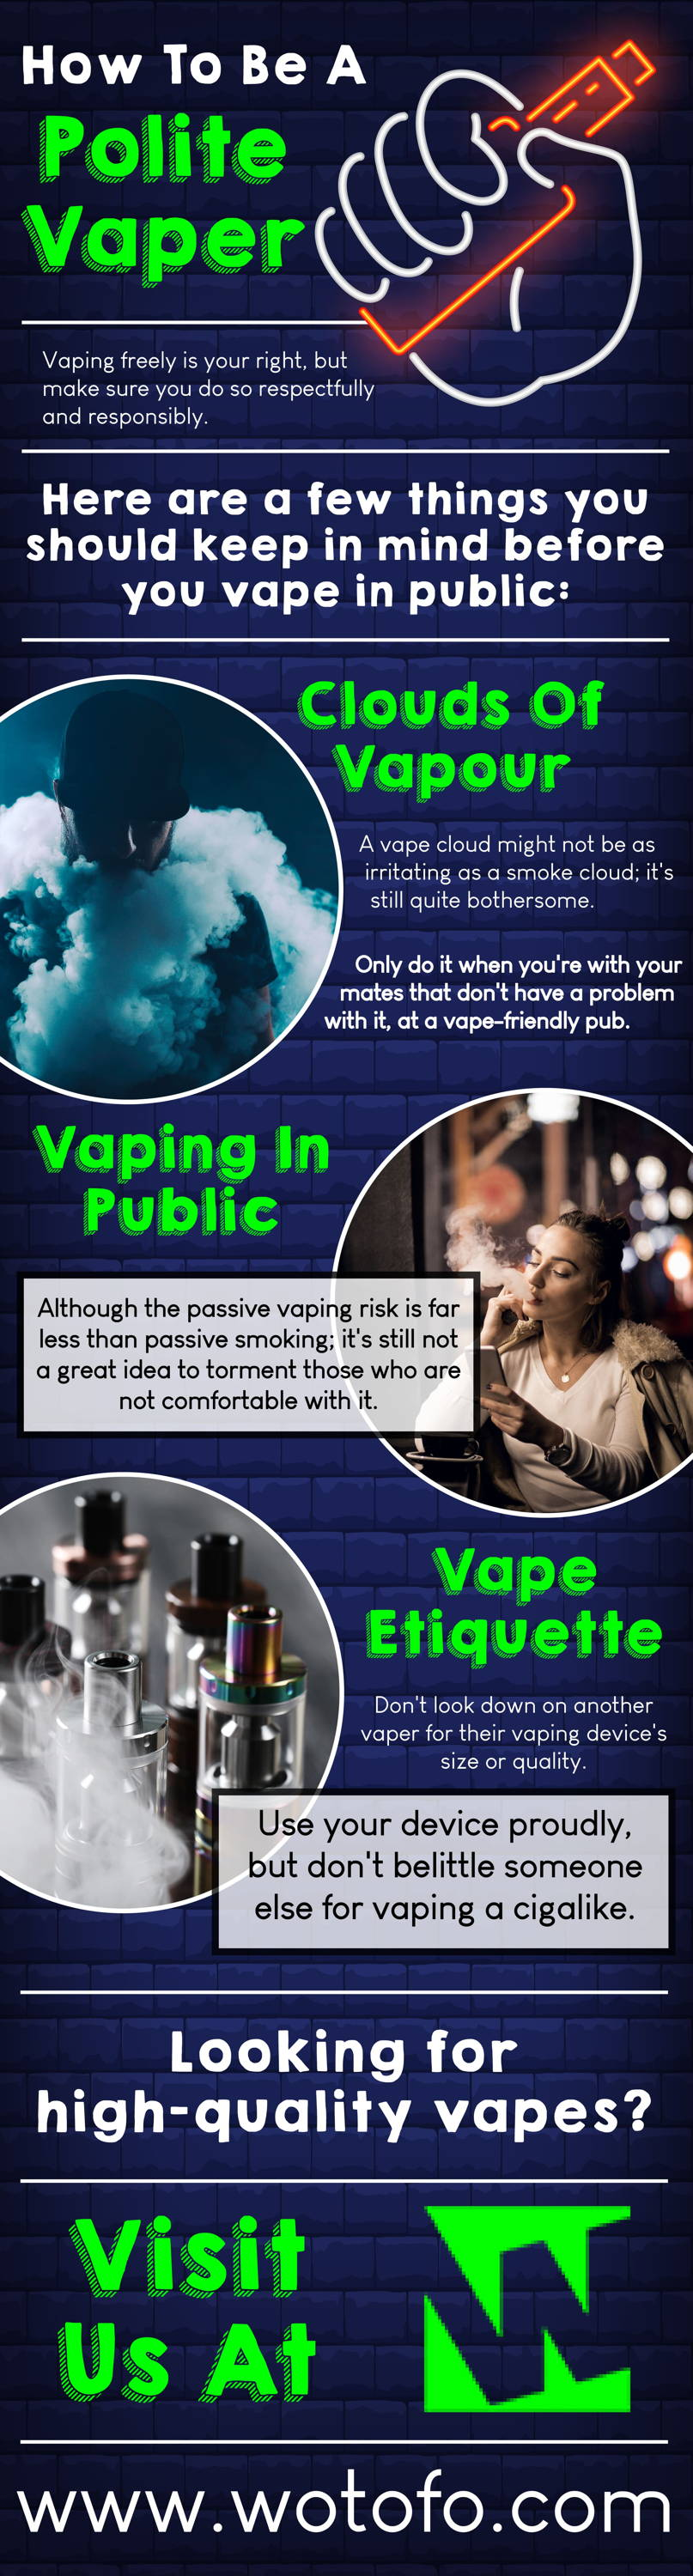 How To Be A Polite Vaper